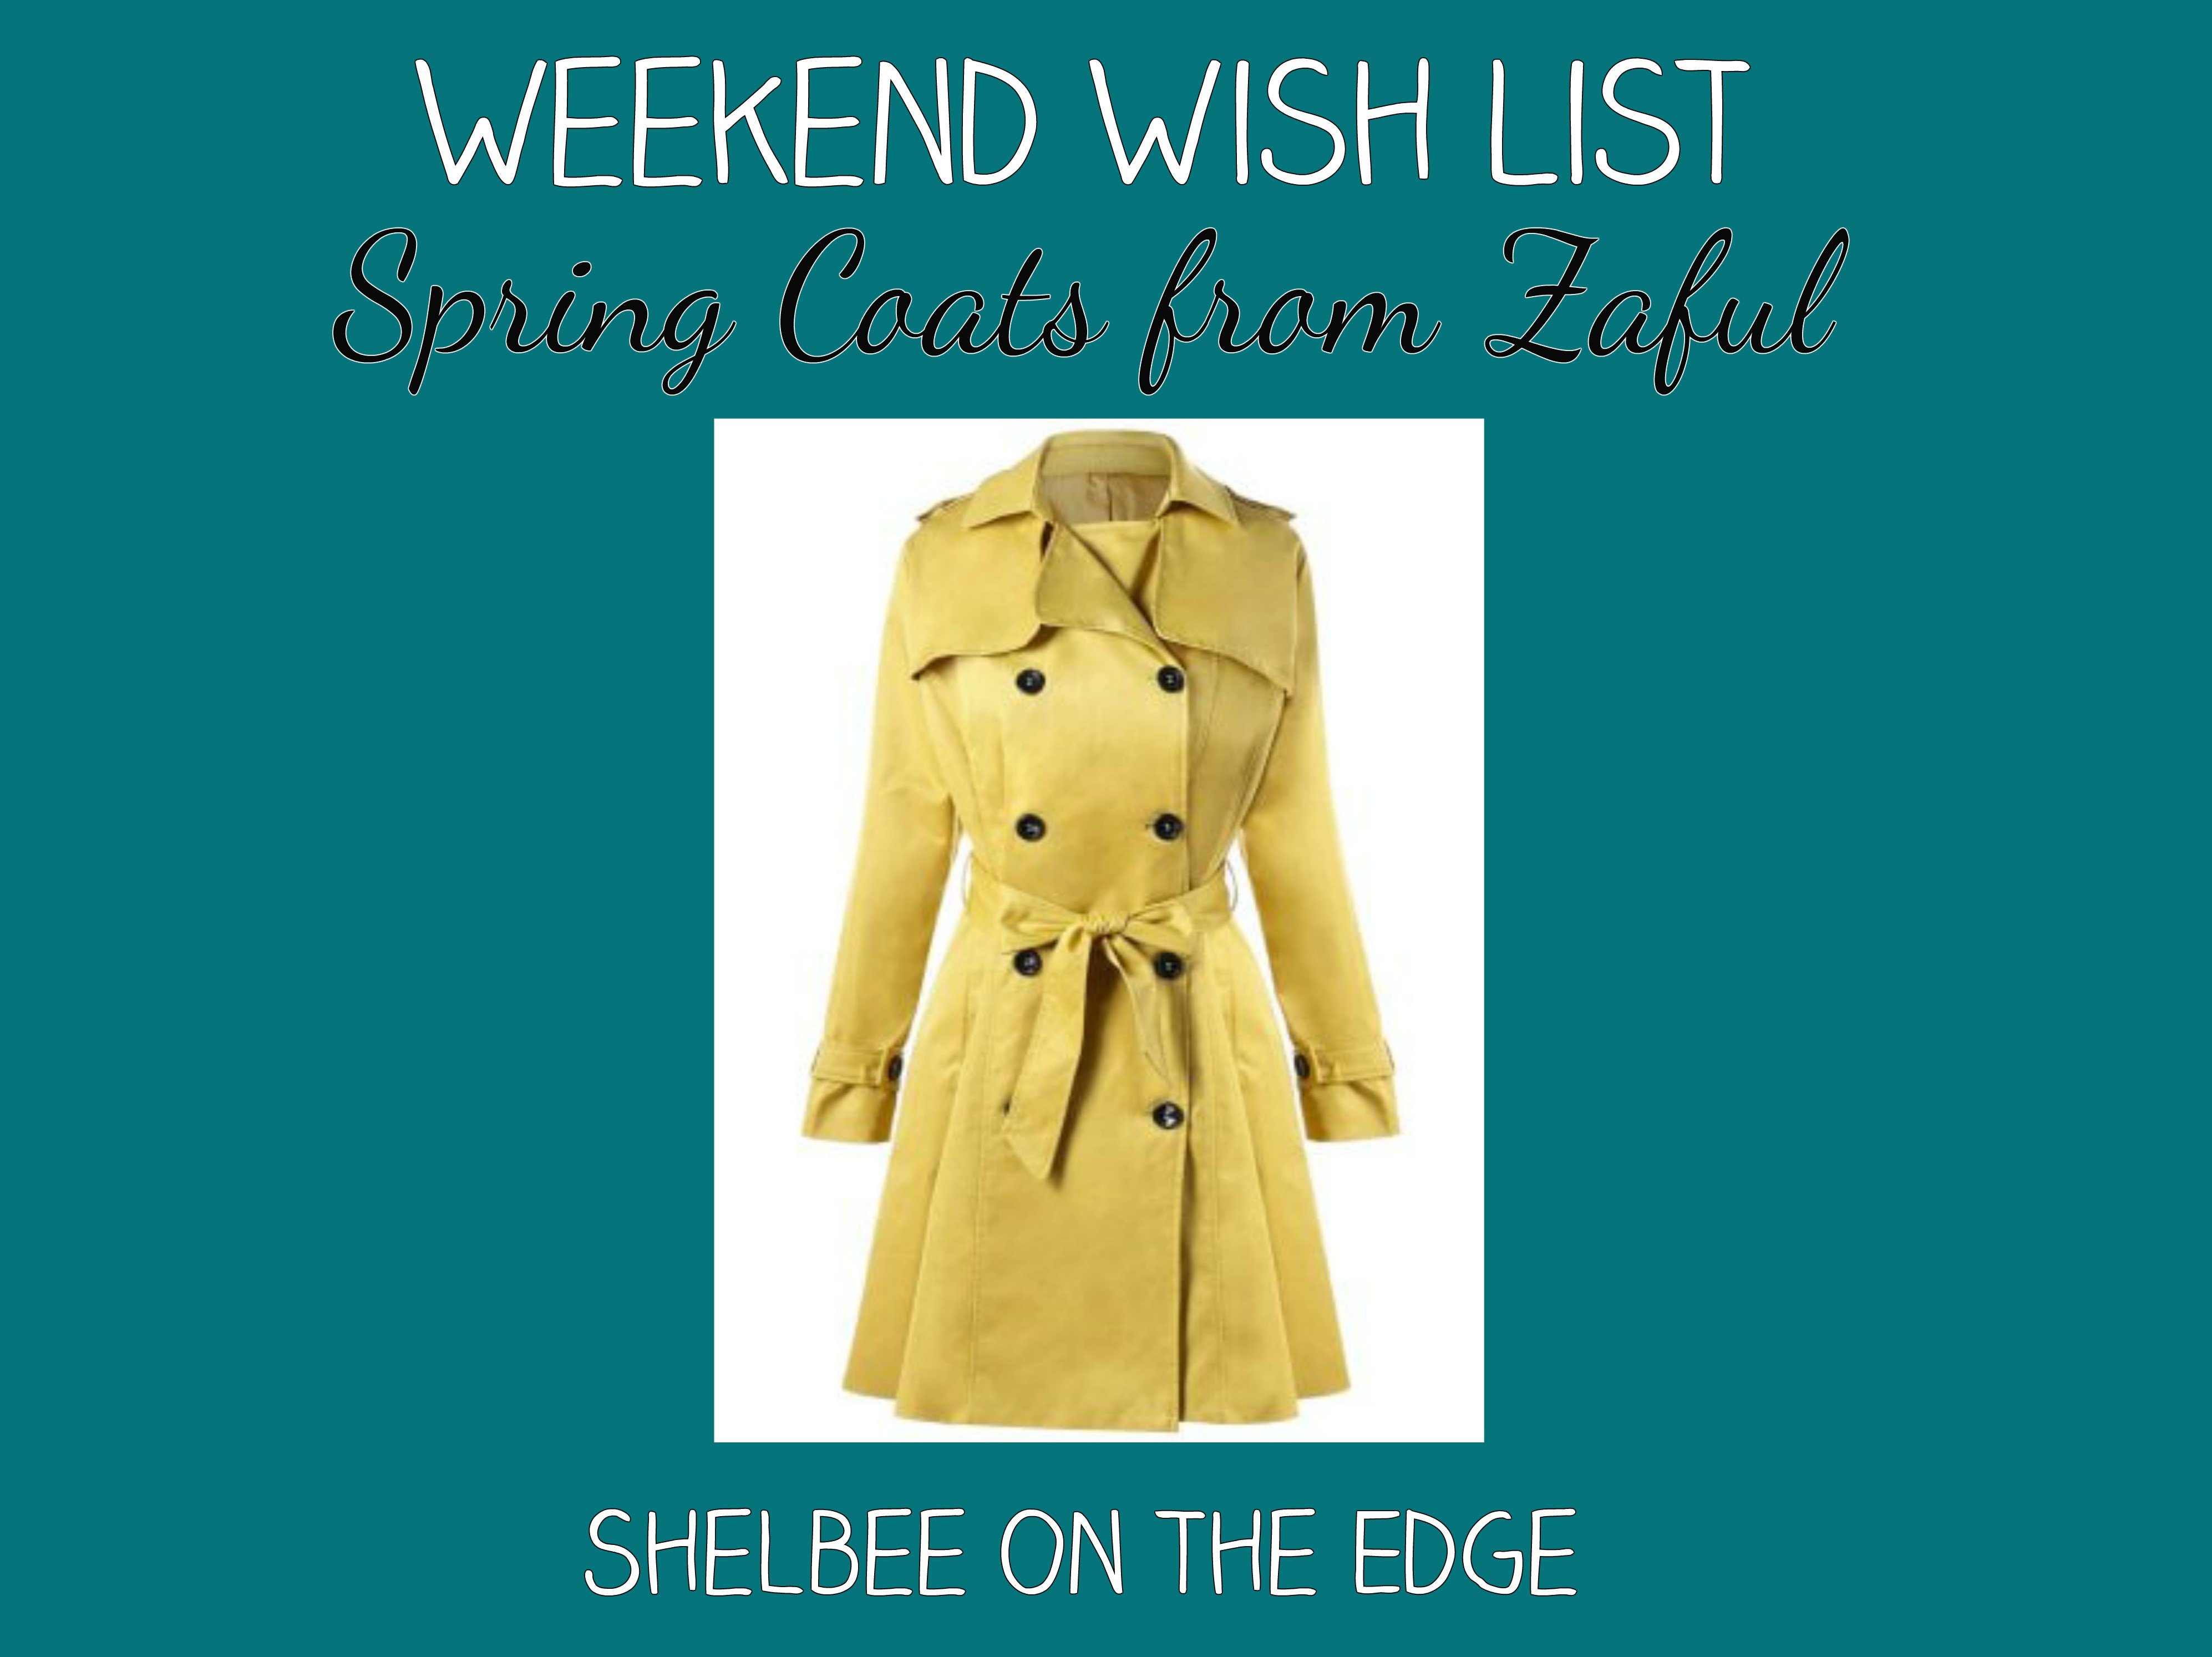 Weekend Wish List: Spring Coats from Zaful